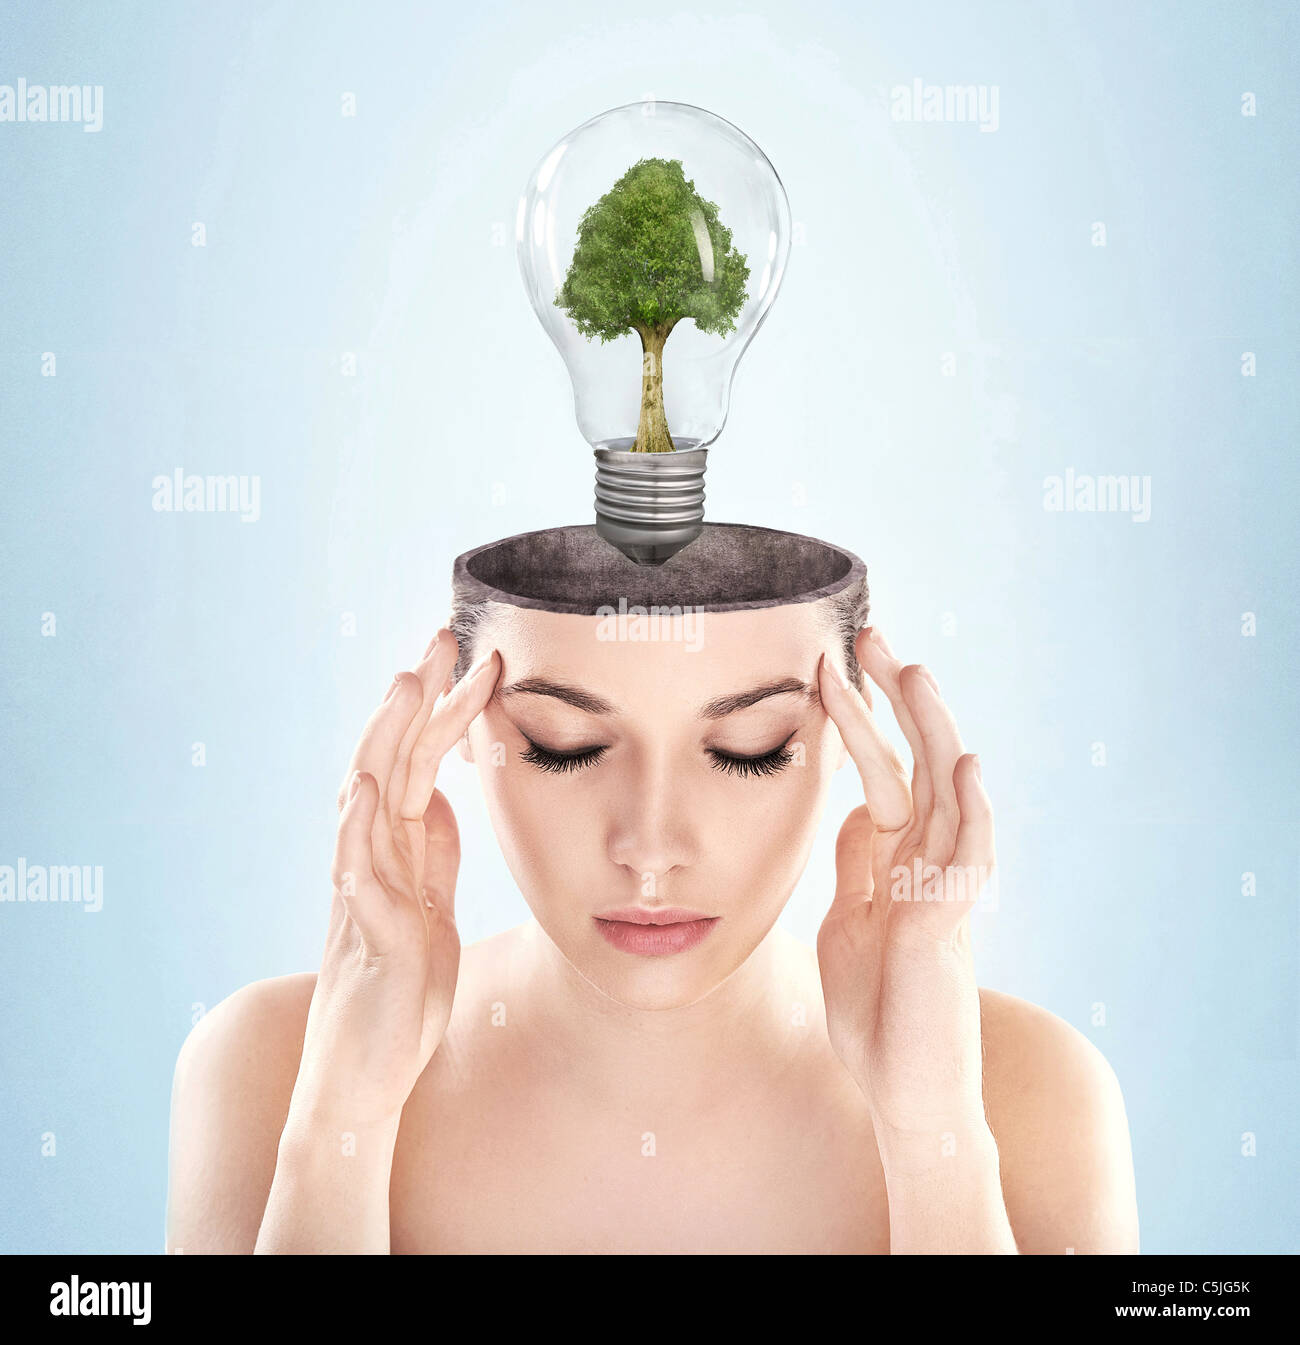 Open minded woman with green energy symbol Stock Foto